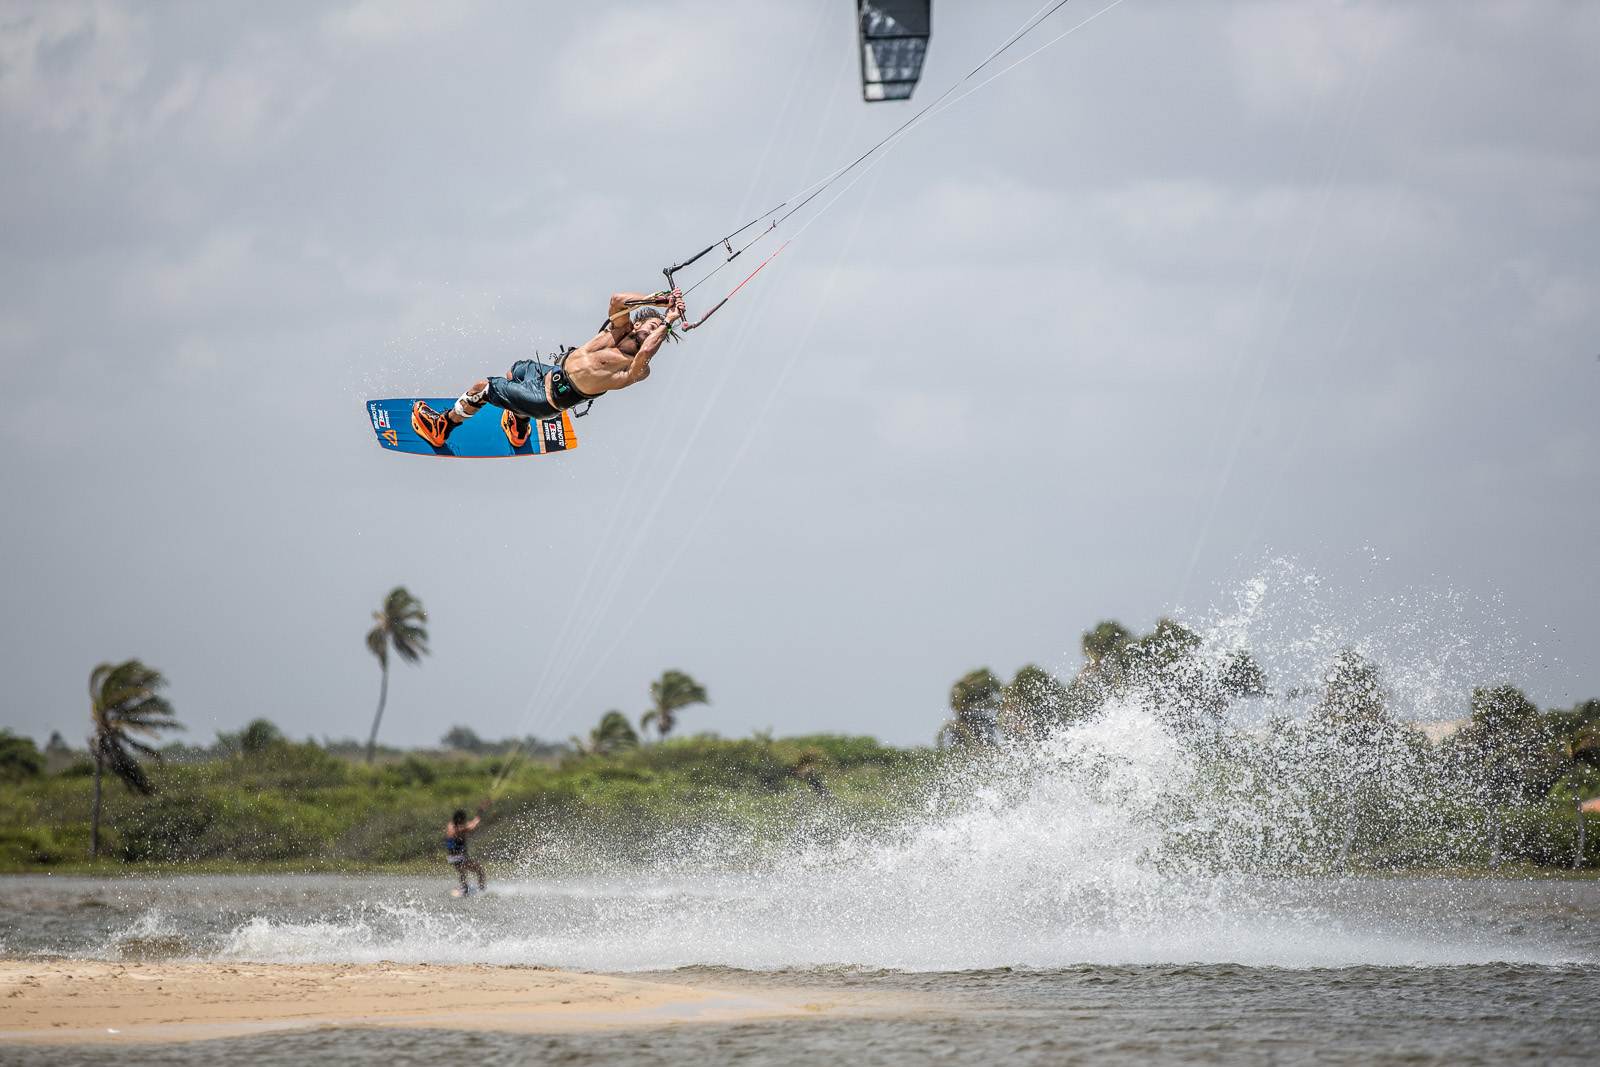 Youri Zoon pushing limits with the perfect conditions at the famous Cauipe lagoon in Cumbuco, Brazil.